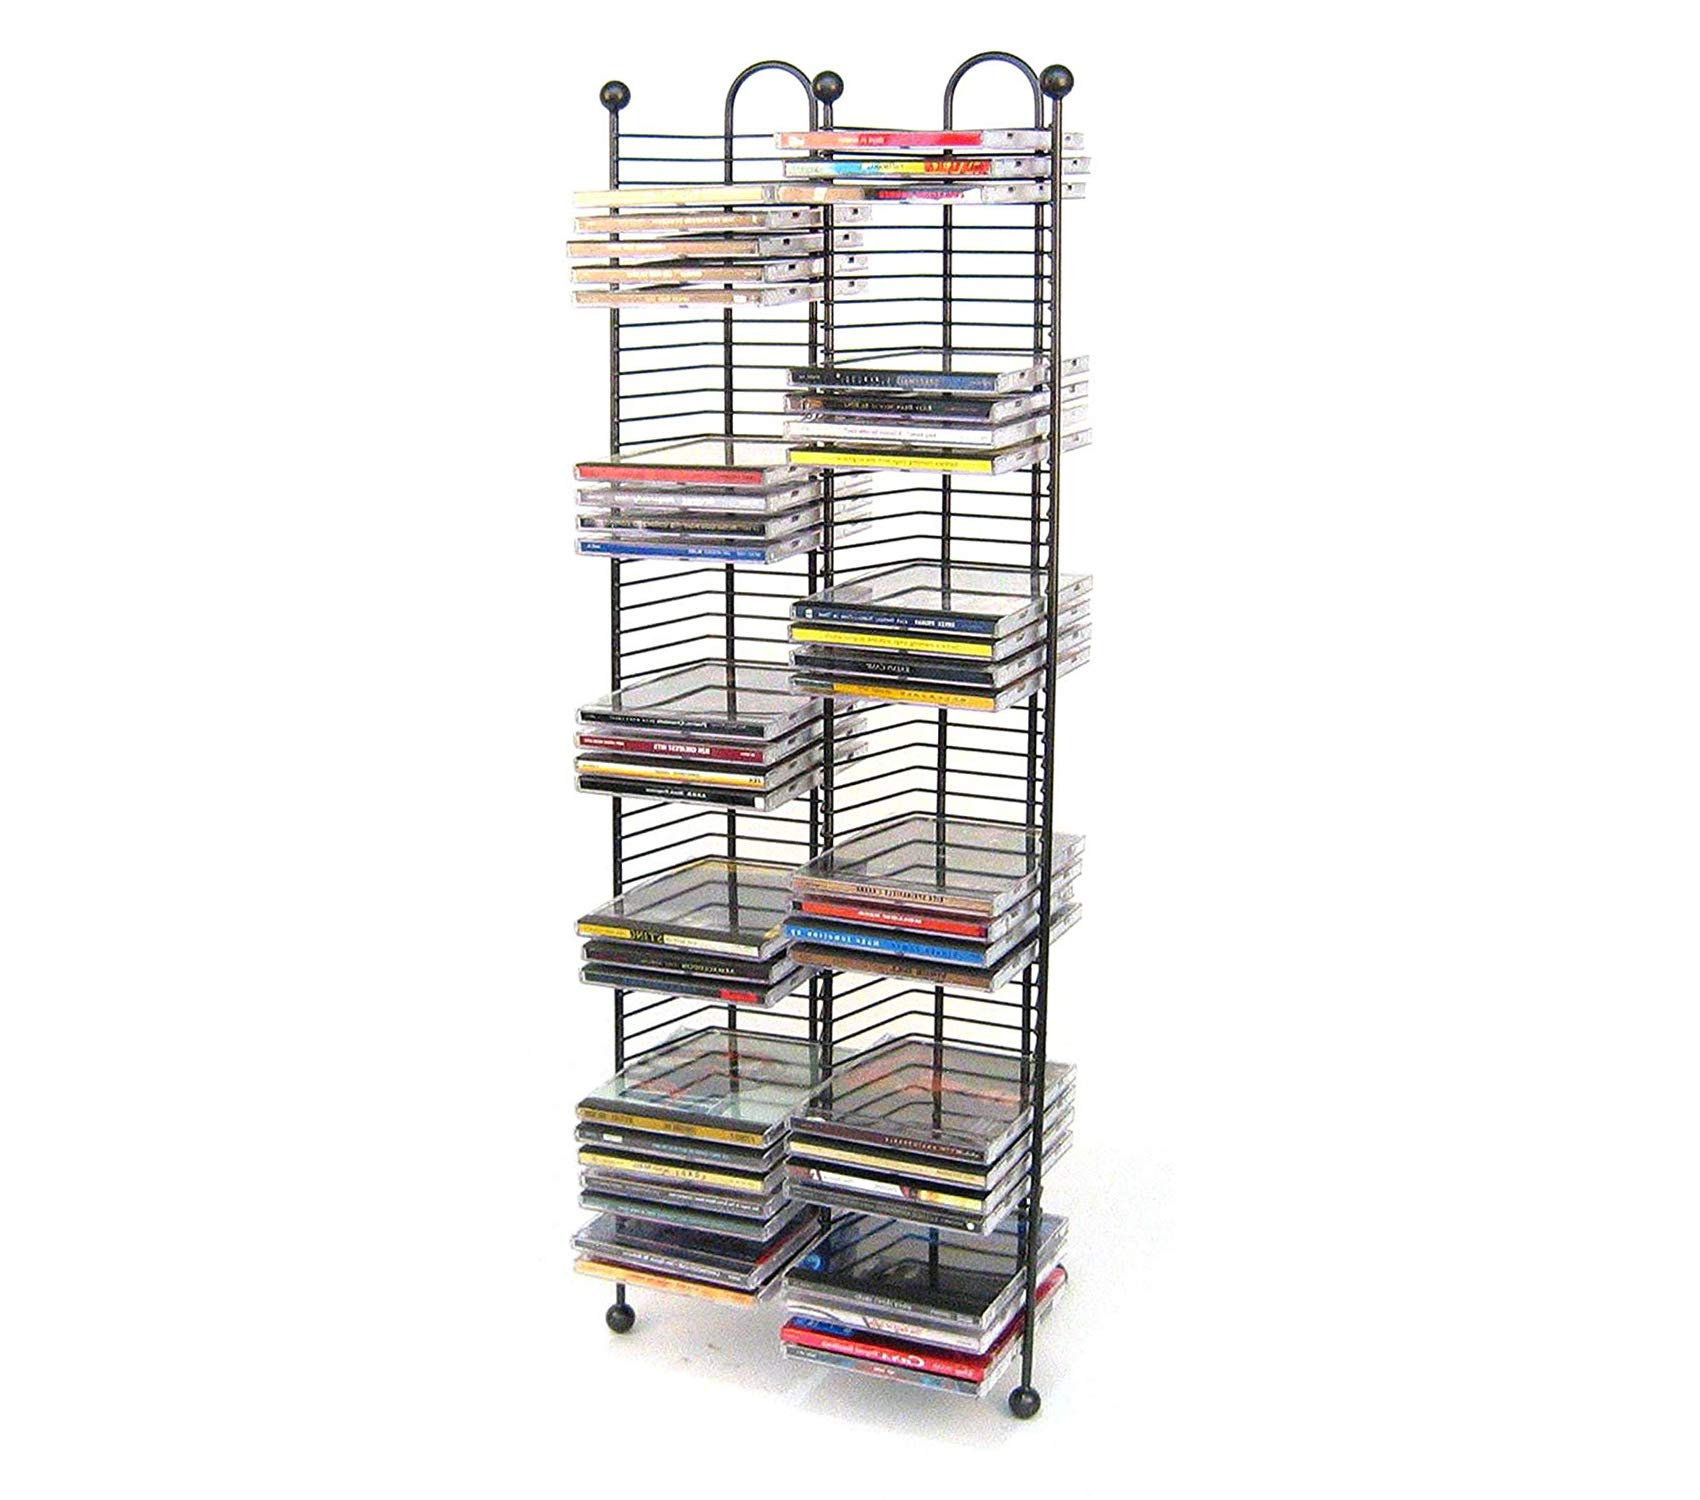 Office Home Furniture Premium 100 CD Tower - Holds 100 CDs, Efficient Space-Saving Design, Heavy Gauge Steel Construction, Gunmetal Finish with Cherry Wood Accents